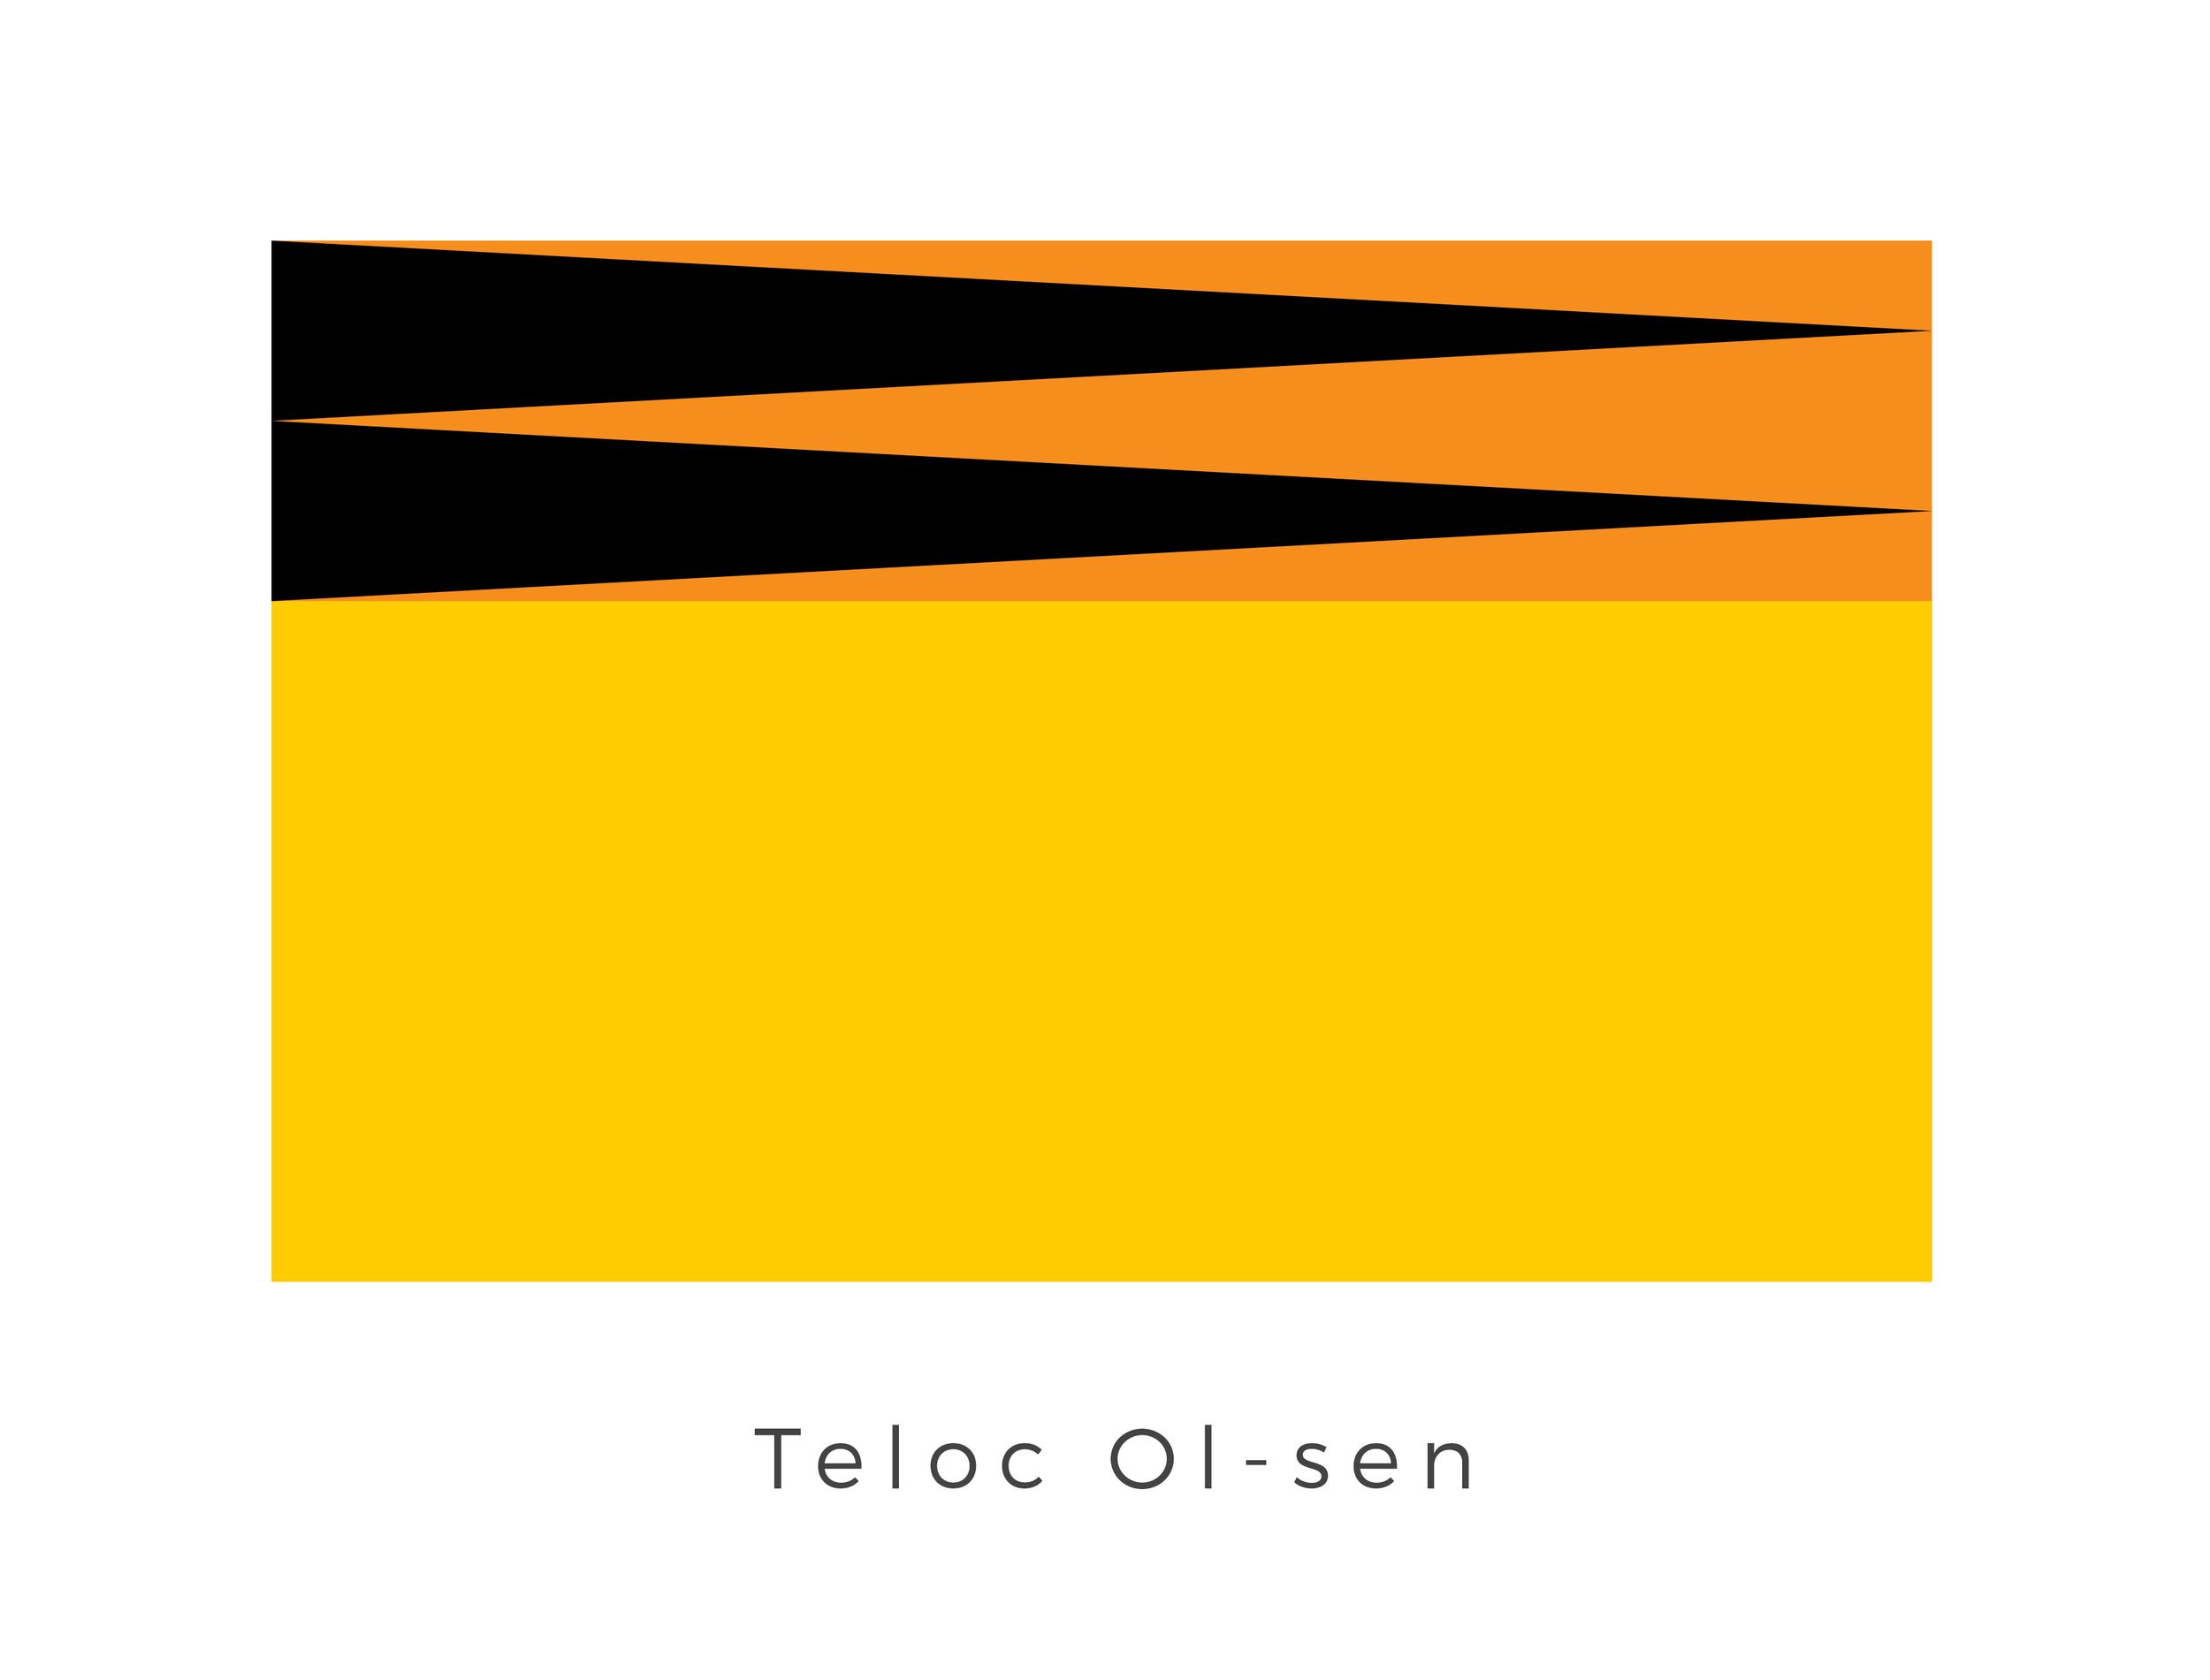 Teloc Ol-sen  was a desert planet located within the Teloc Ol-sen system of the Mid Rim that was inhabited by the Teloc Hunters. At some point before 2 ABY, the vigilante group known as the Zulirian Swordmasters fought and massacred a Rebel cell on Teloc Ol-sen. Members of Alliance Intelligence later wrote a report on this event. The aggressive black and orange shapes on the top of the flag are that of the Zulirian Swordmasters while the plain of orange represents the desert surface of the planet.